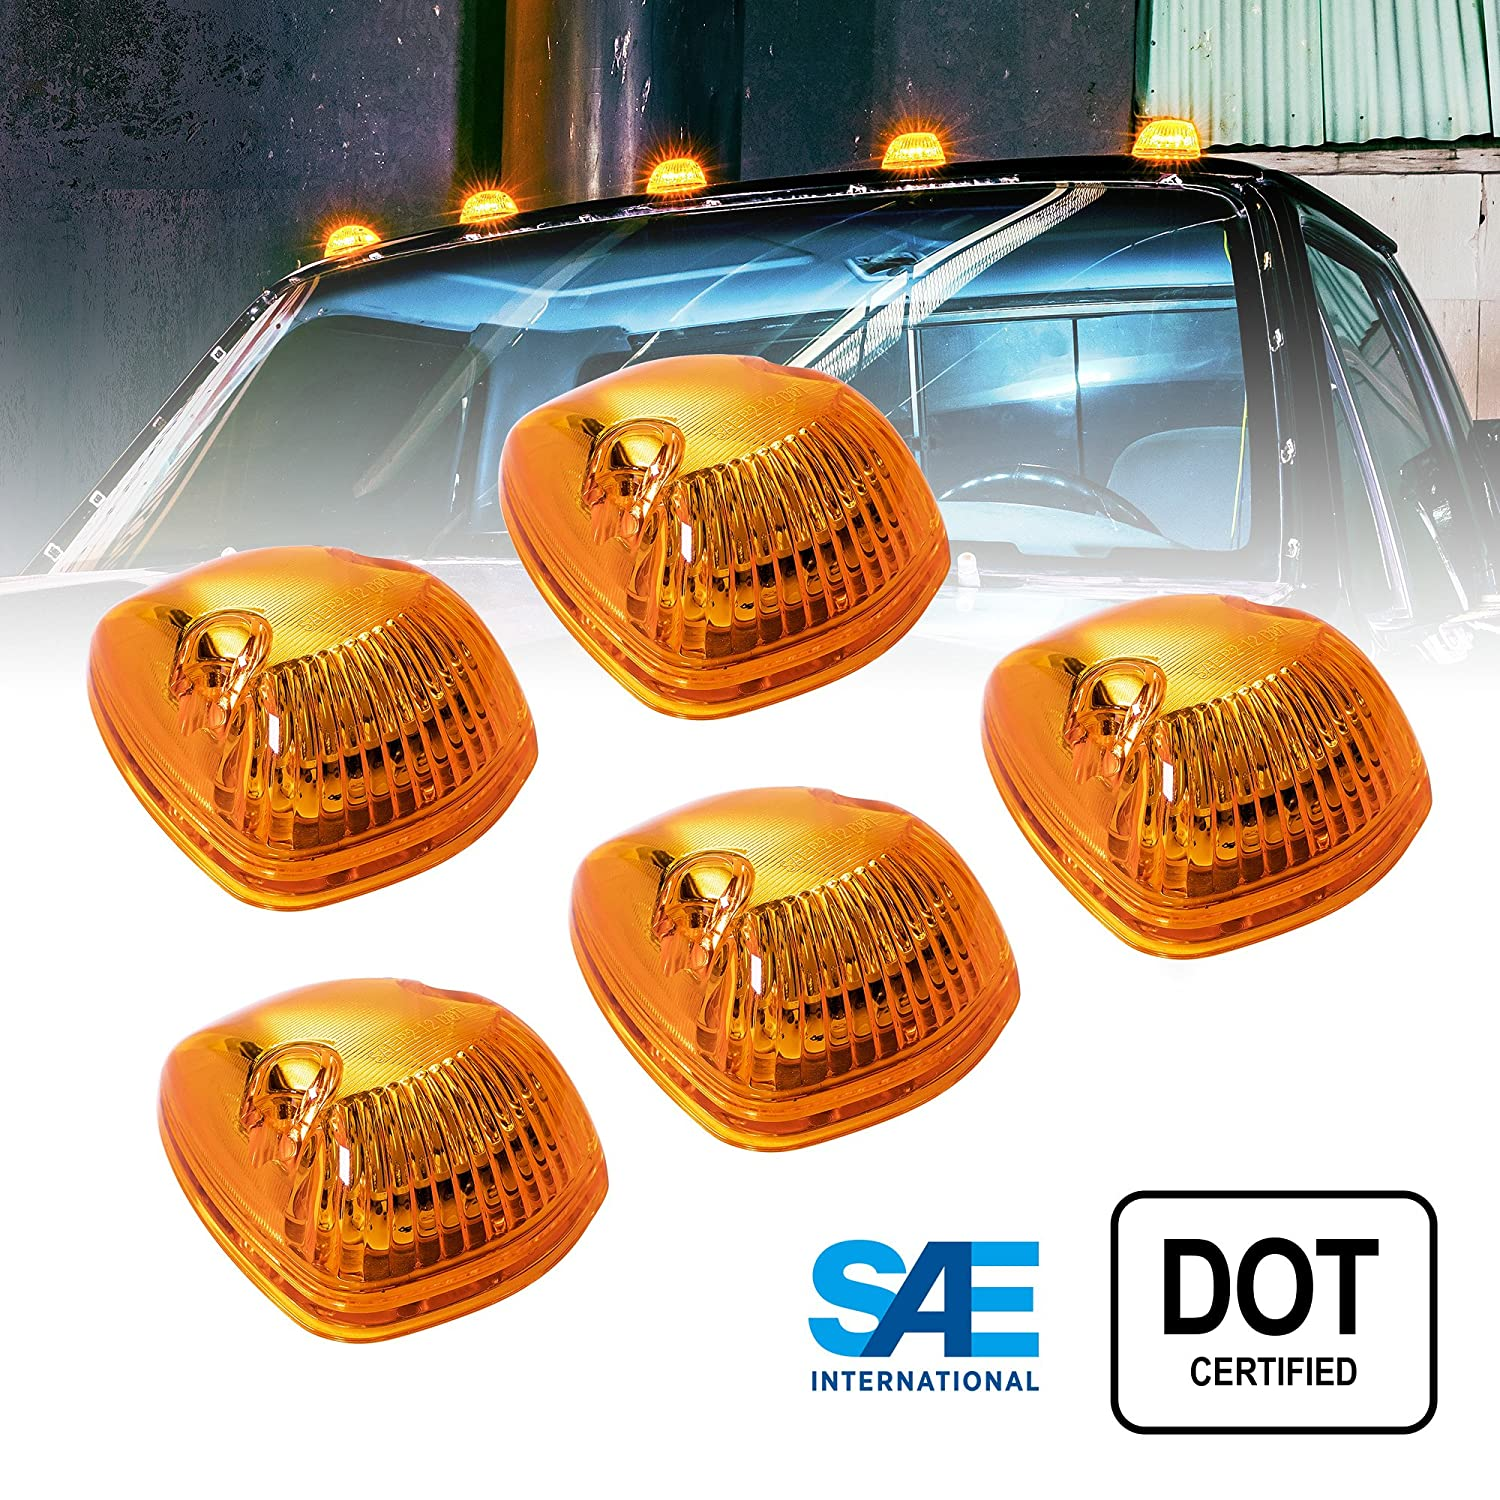 5pc Amber LED Cab Lights [DOT/SAE Certified] [12 LED] [Waterproof] [Heavy Duty] LED Roof Top Marker Running Lights - (Universal Fit or Replacement for 94-98 Dodge Ram) ONLINE LED STORE